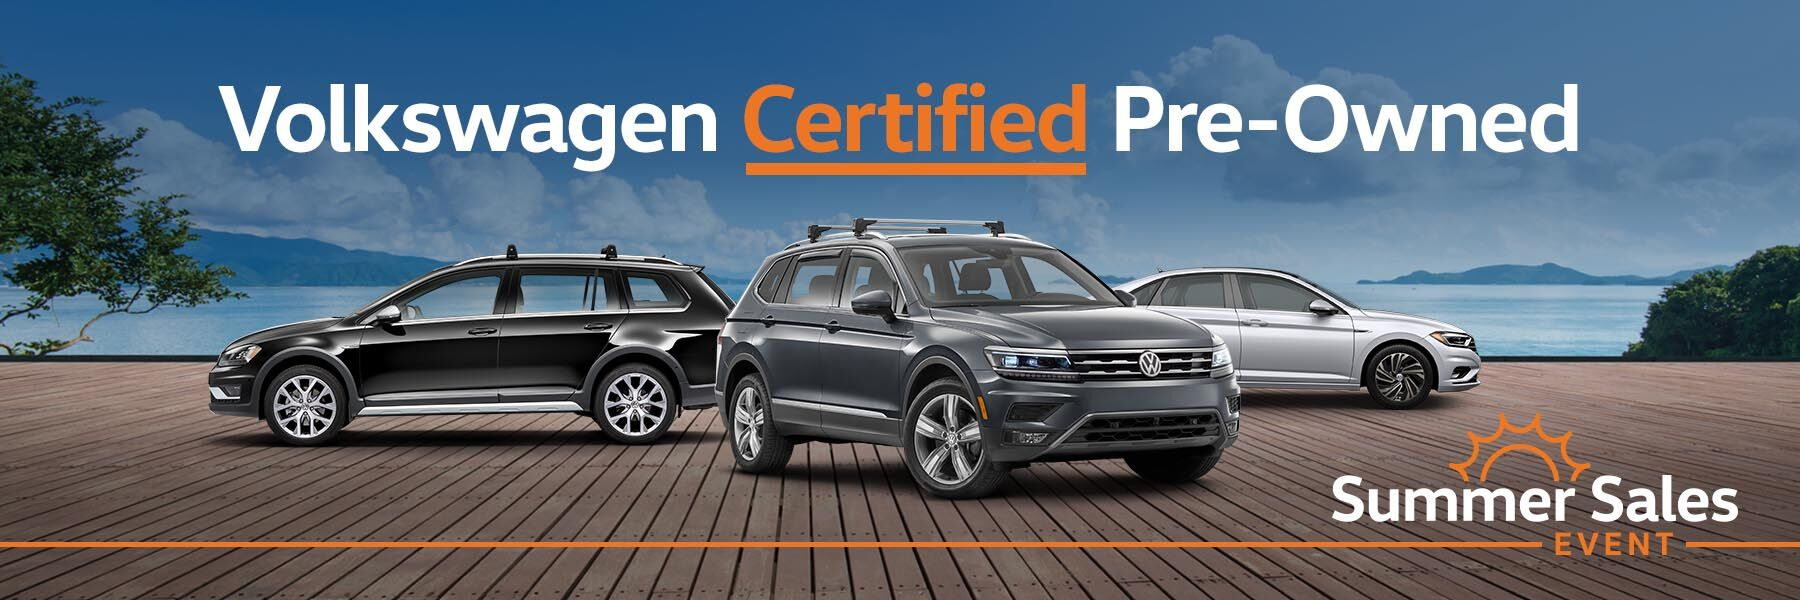 Volkswagen Certified Pre-Owned in Franklin, TN